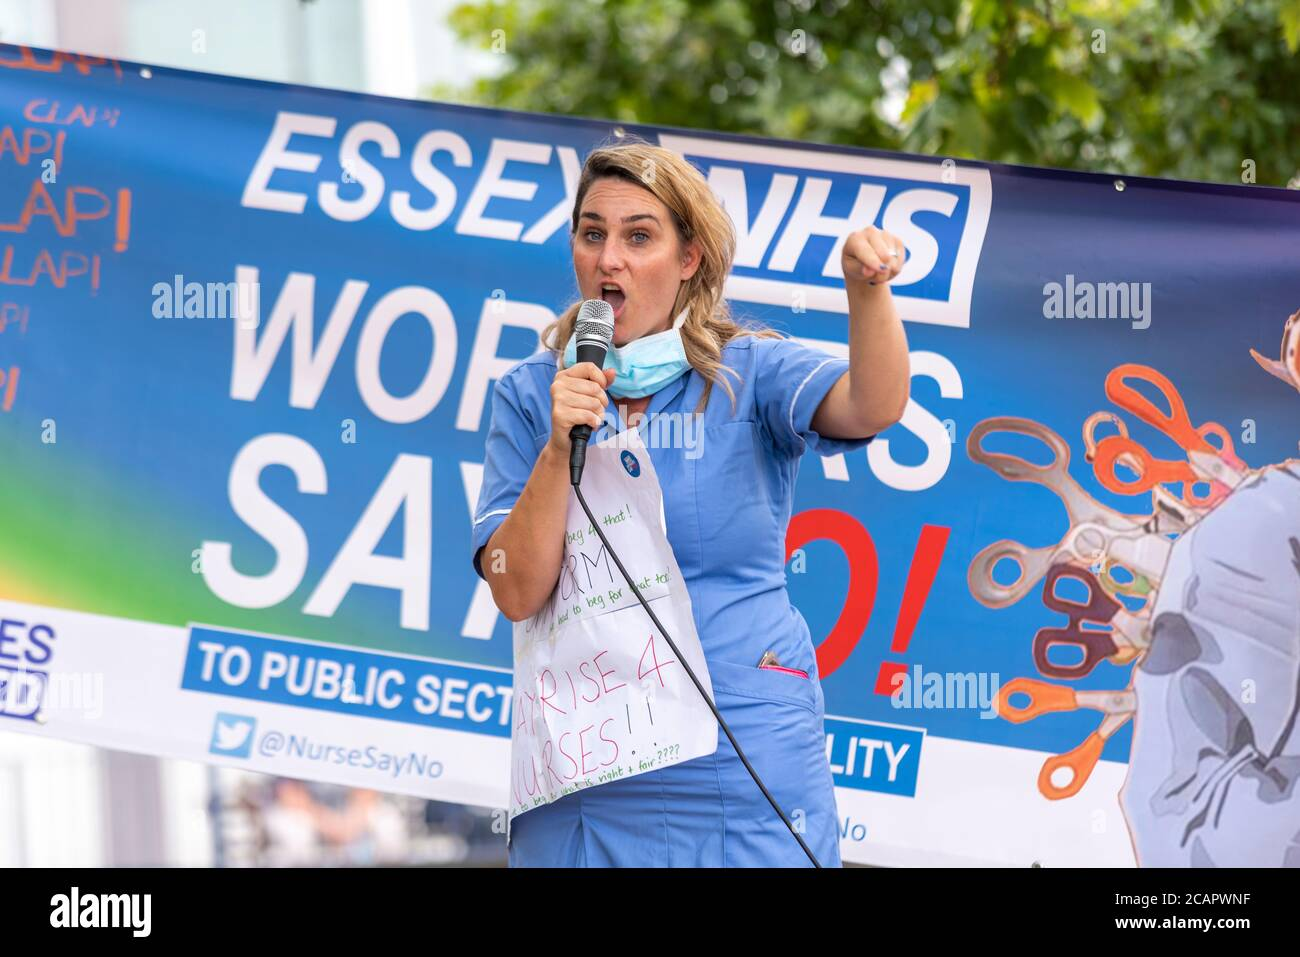 basildon-essex-uk-8th-aug-2020-a-demonstration-march-has-taken-place-in-basildon-protesting-against-the-exclusion-of-national-health-service-staff-from-the-public-sector-pay-increase-protesters-gathered-at-basildon-hospital-before-marching-into-basildon-town-centre-where-many-placed-flowers-and-ribbon-tributes-for-the-many-healthcare-workers-lost-to-the-covid-19-coronavirus-pandemic-a-nurse-from-southend-hospital-tells-of-the-harsh-conditions-and-lack-of-ppe-during-the-pandemic-2CAPWNF.jpg